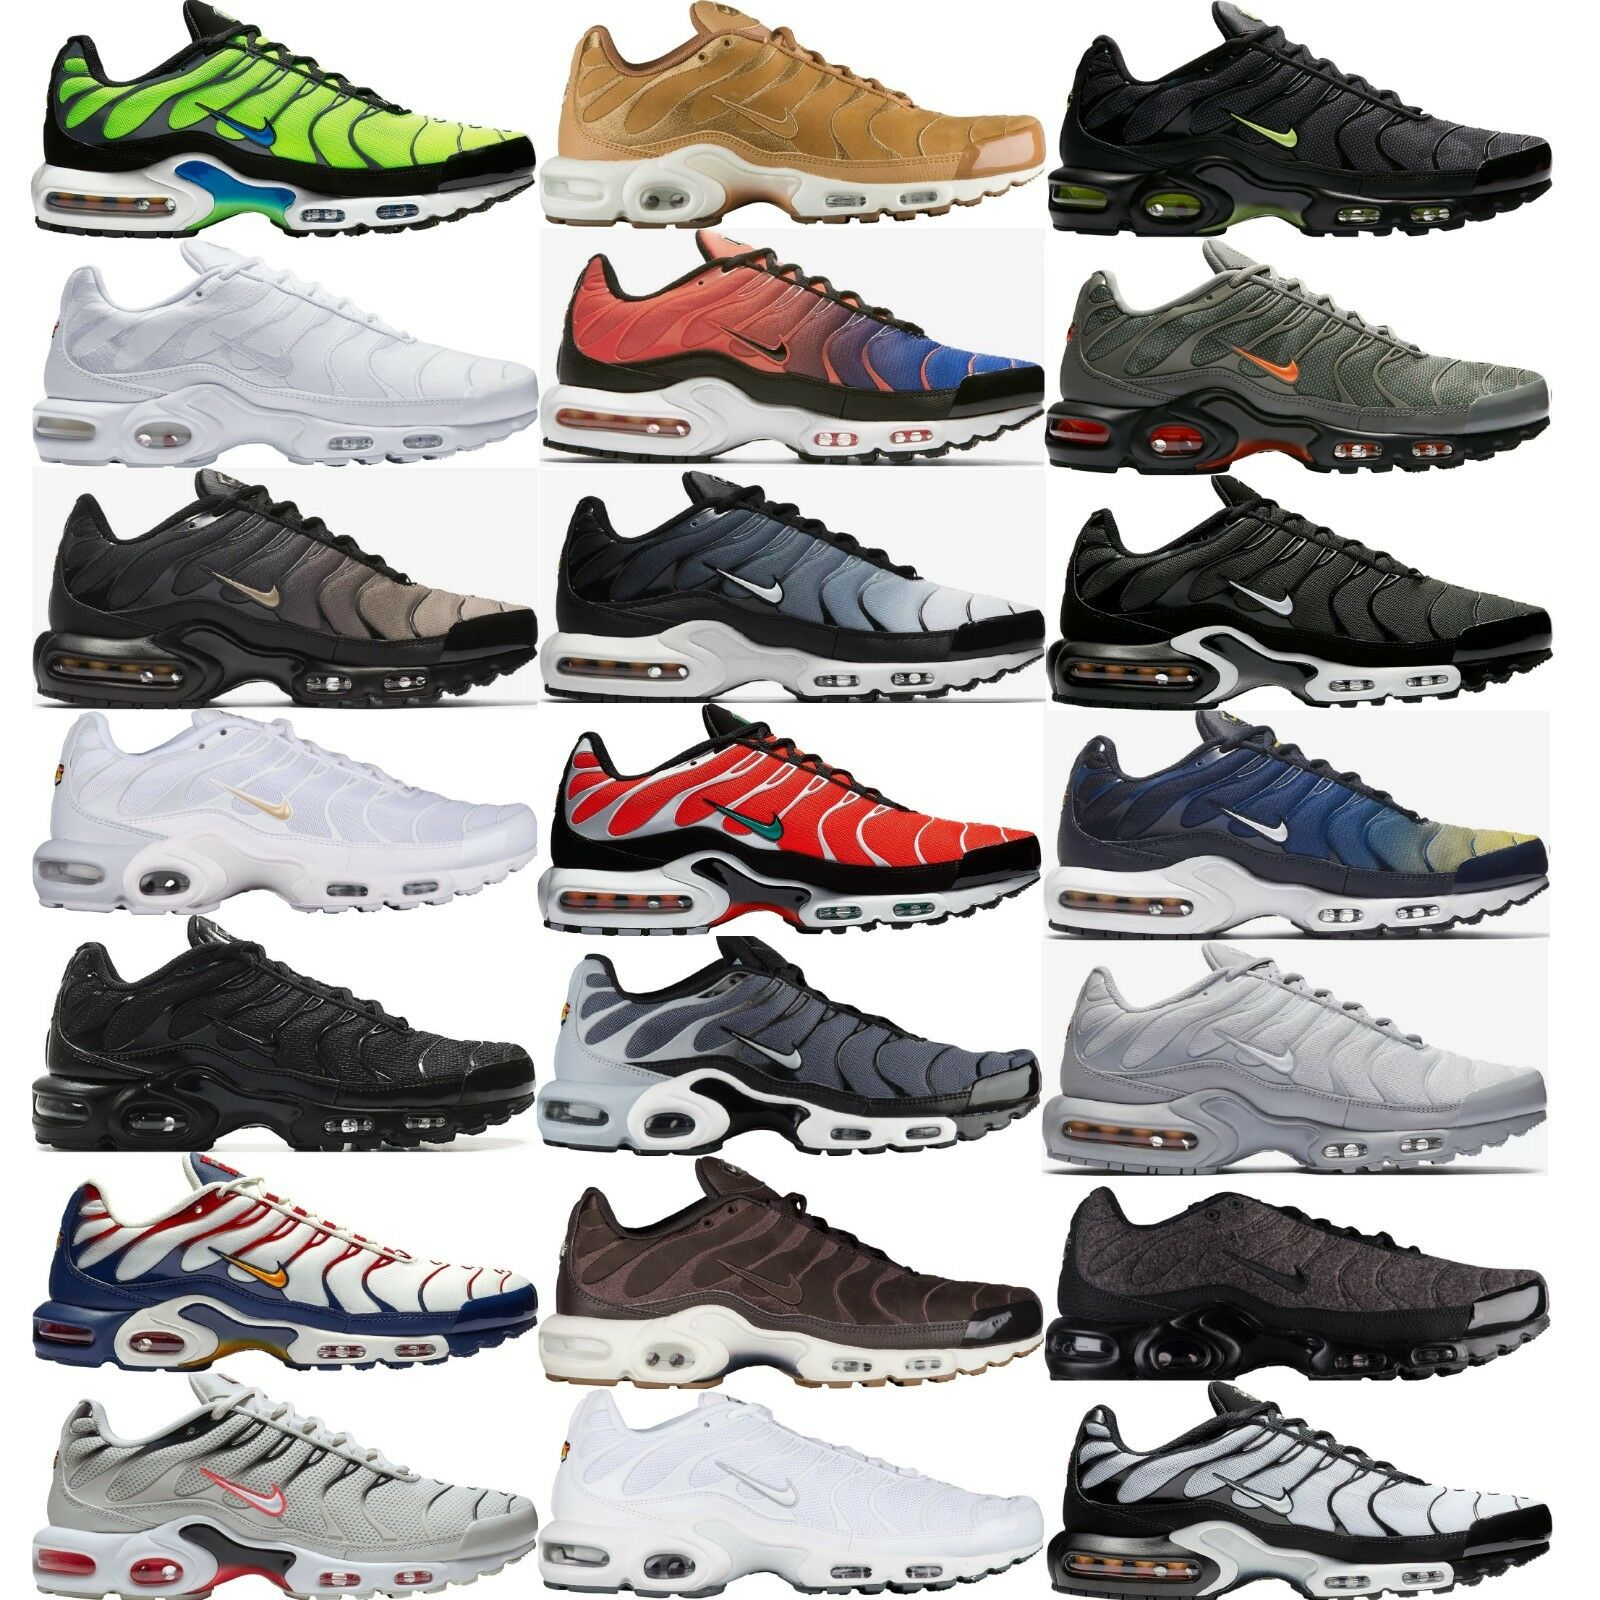 NIKE AIR MAX PLUS Tn Tuned Air MEN'S PREMIUM SNEAKERS LIFESTYLE COMFY SHOES Brand discount